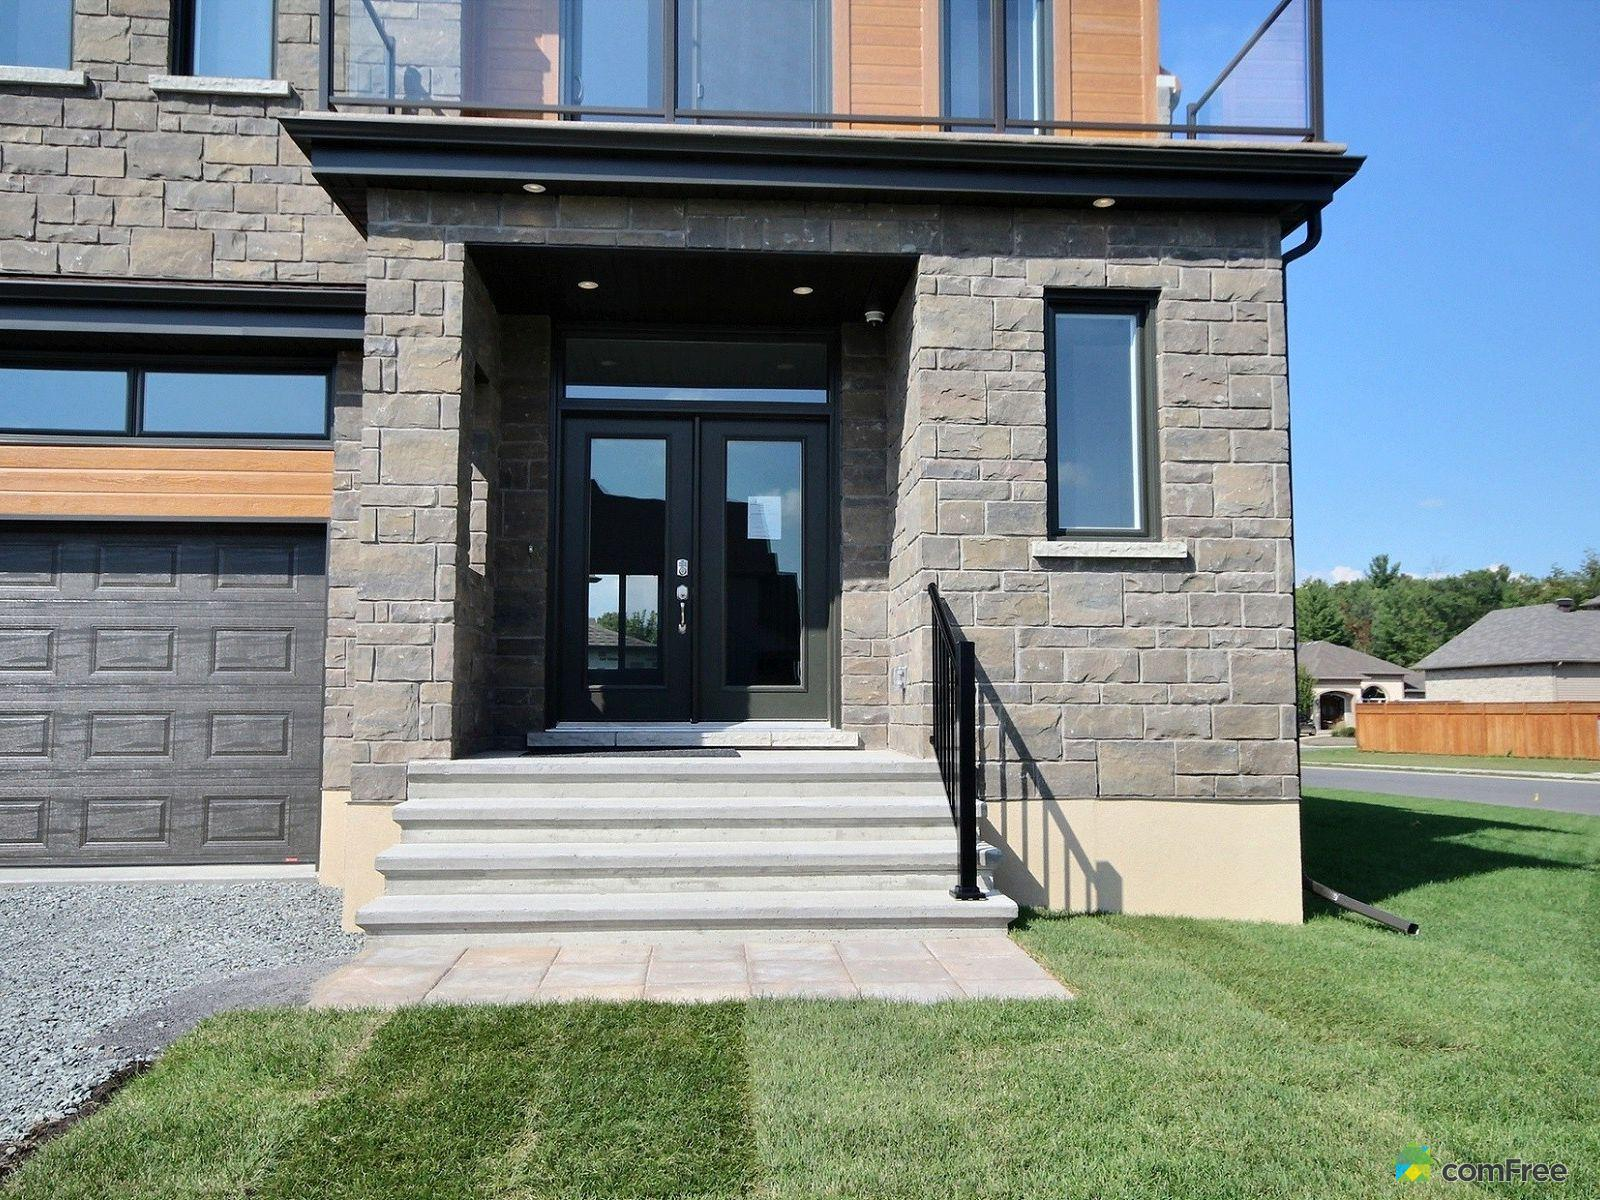 entrance-new-home-for-sale-rockland-ontario-1600-6609326.jpg